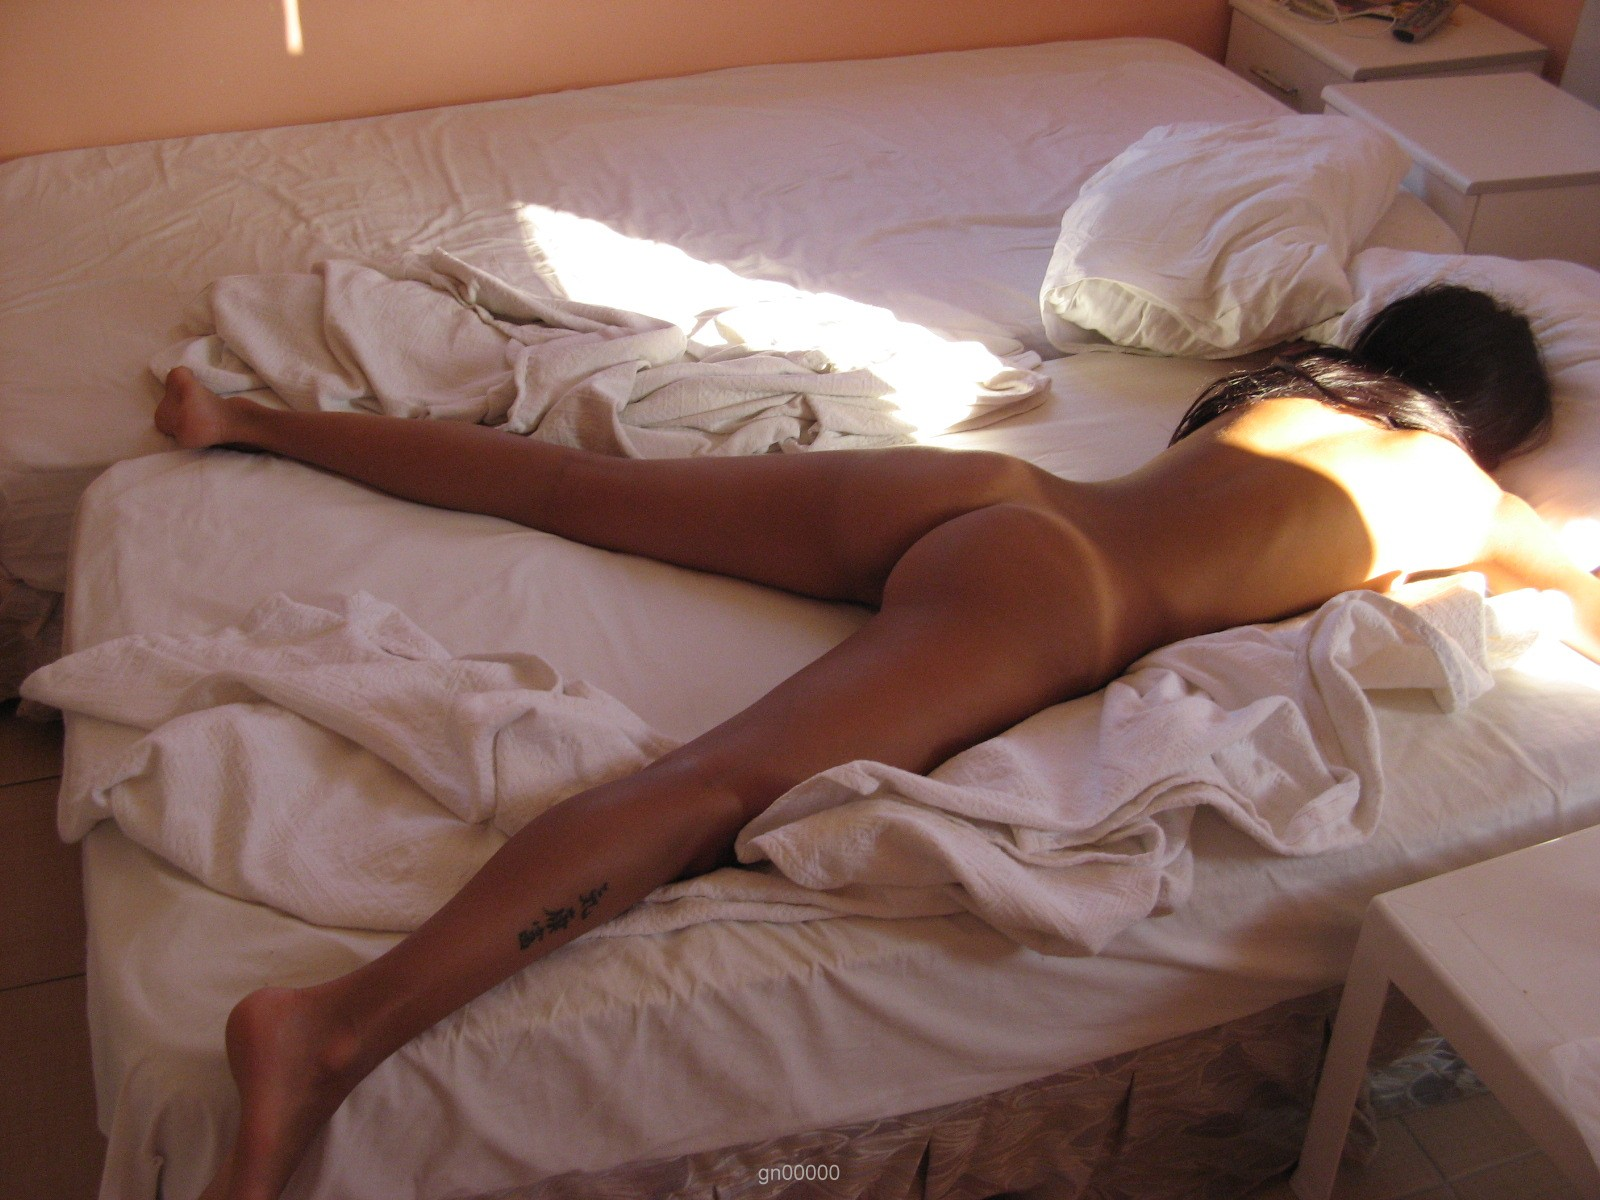 naughty-russian-naked-amateur-girl-on-holydays-43